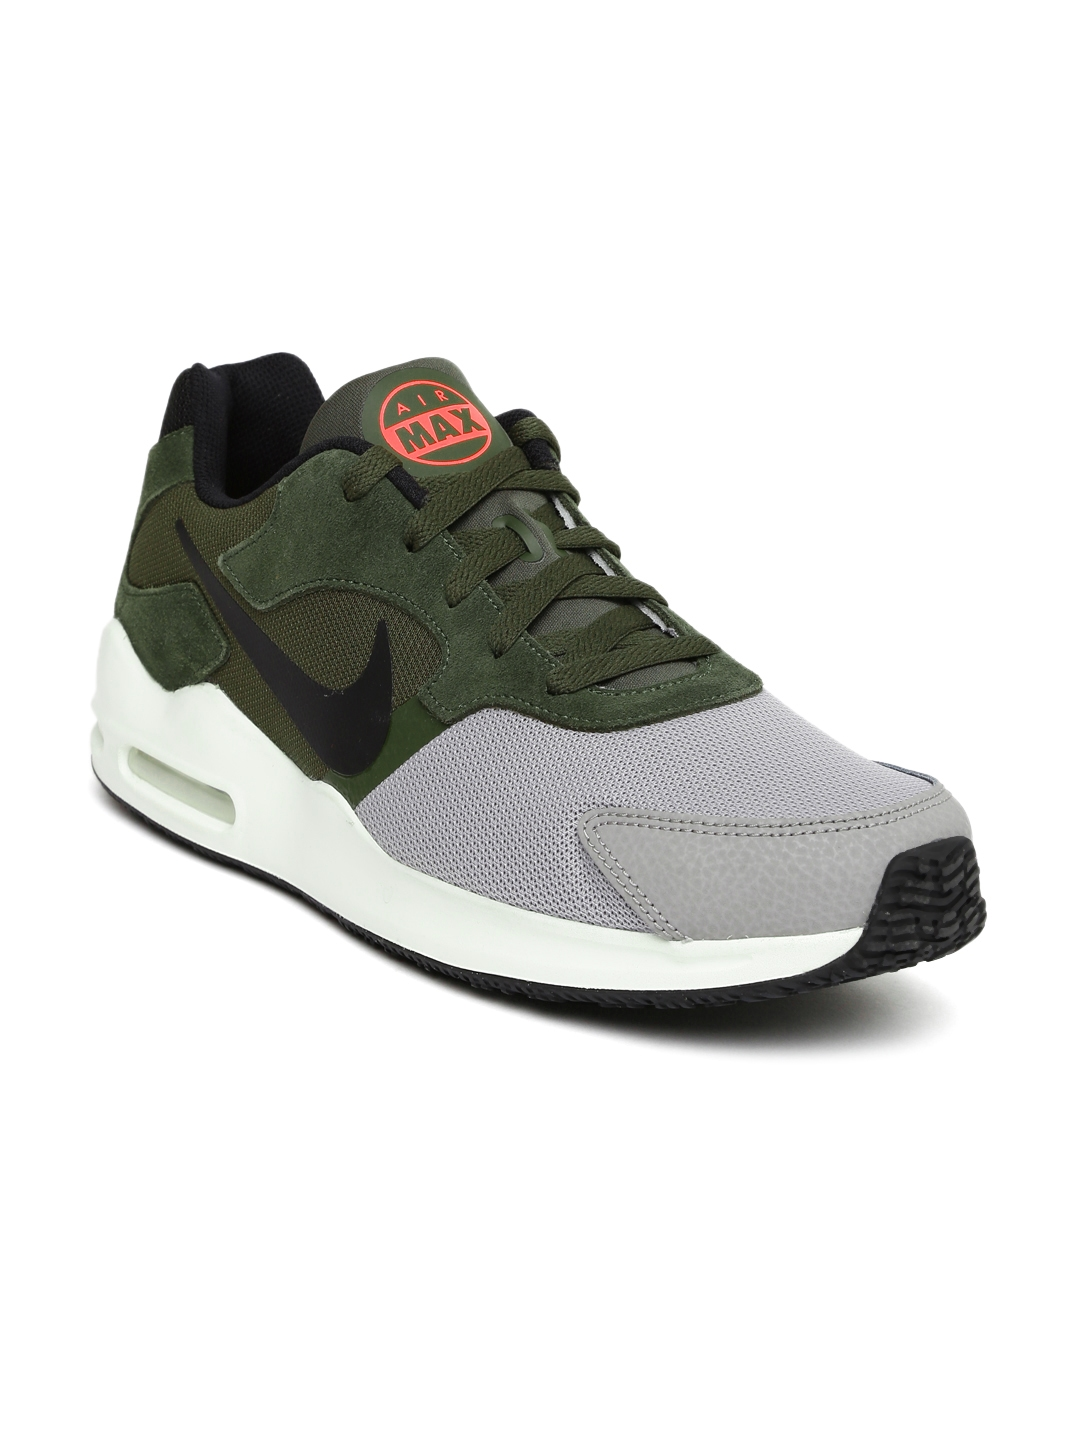 timeless design 1eade 0599b Nike Men Grey  Olive Green AIR MAX GUILE Sneakers